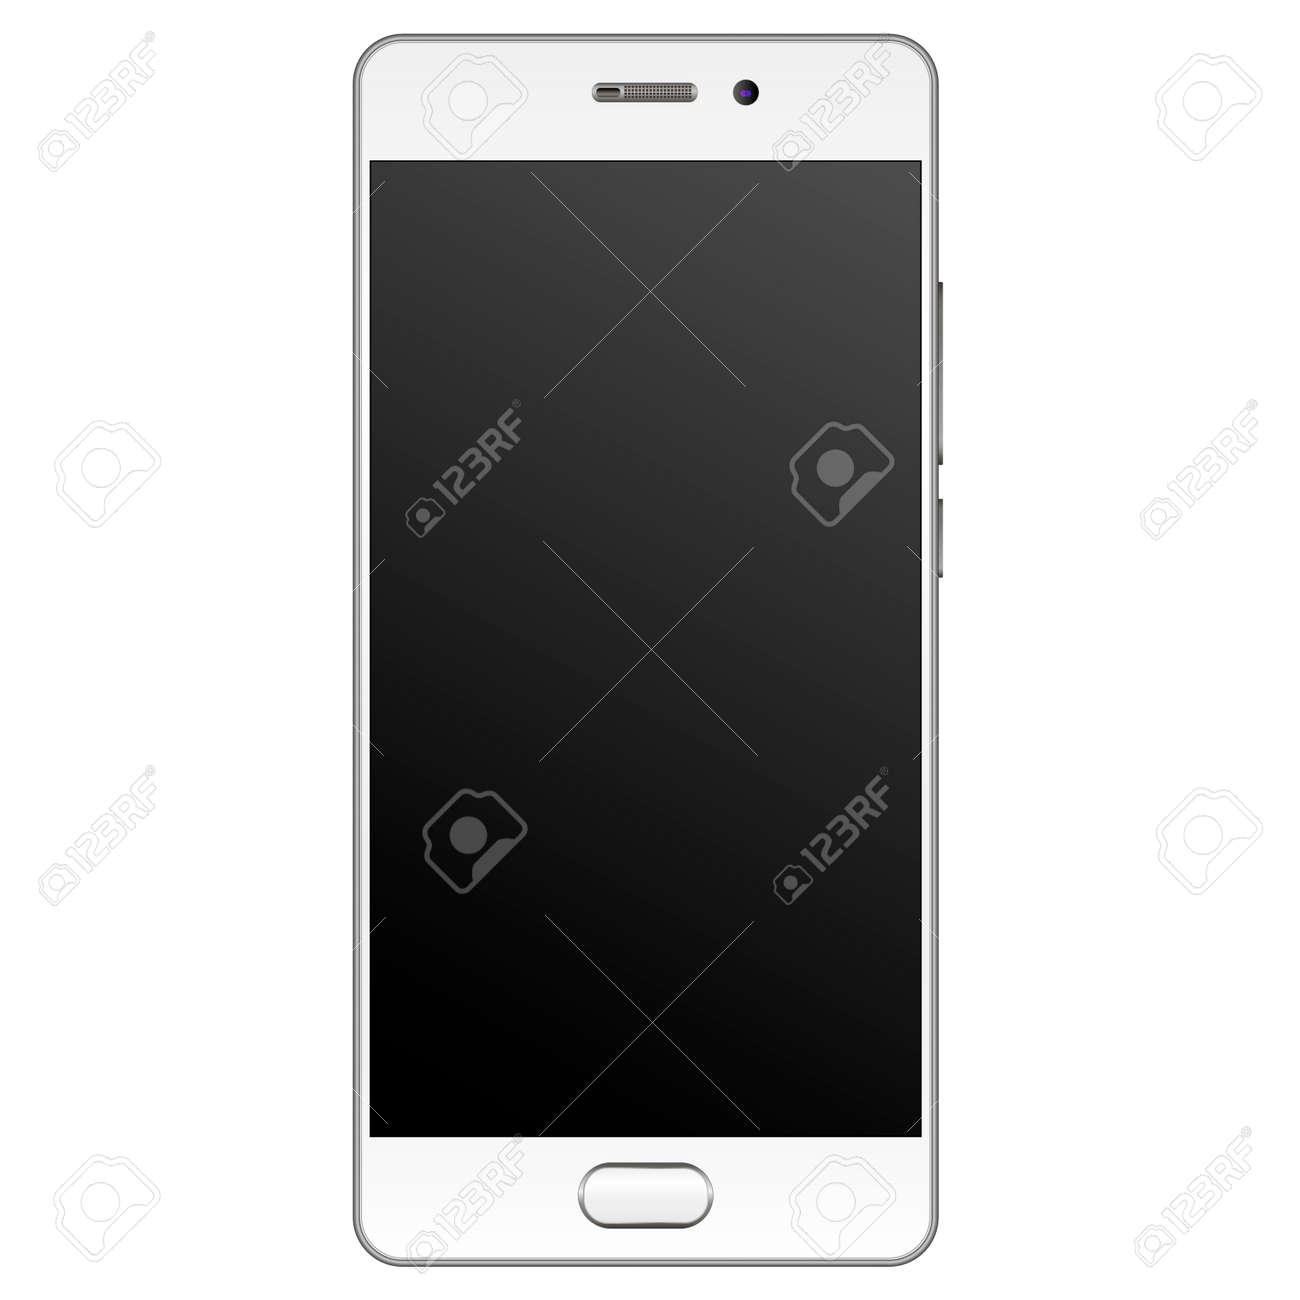 Modern realistic Smartphone mockup with silver edge frame. Cell phone template with empty screen Vector illustration. Mobile device isolated on white background. - 121640518